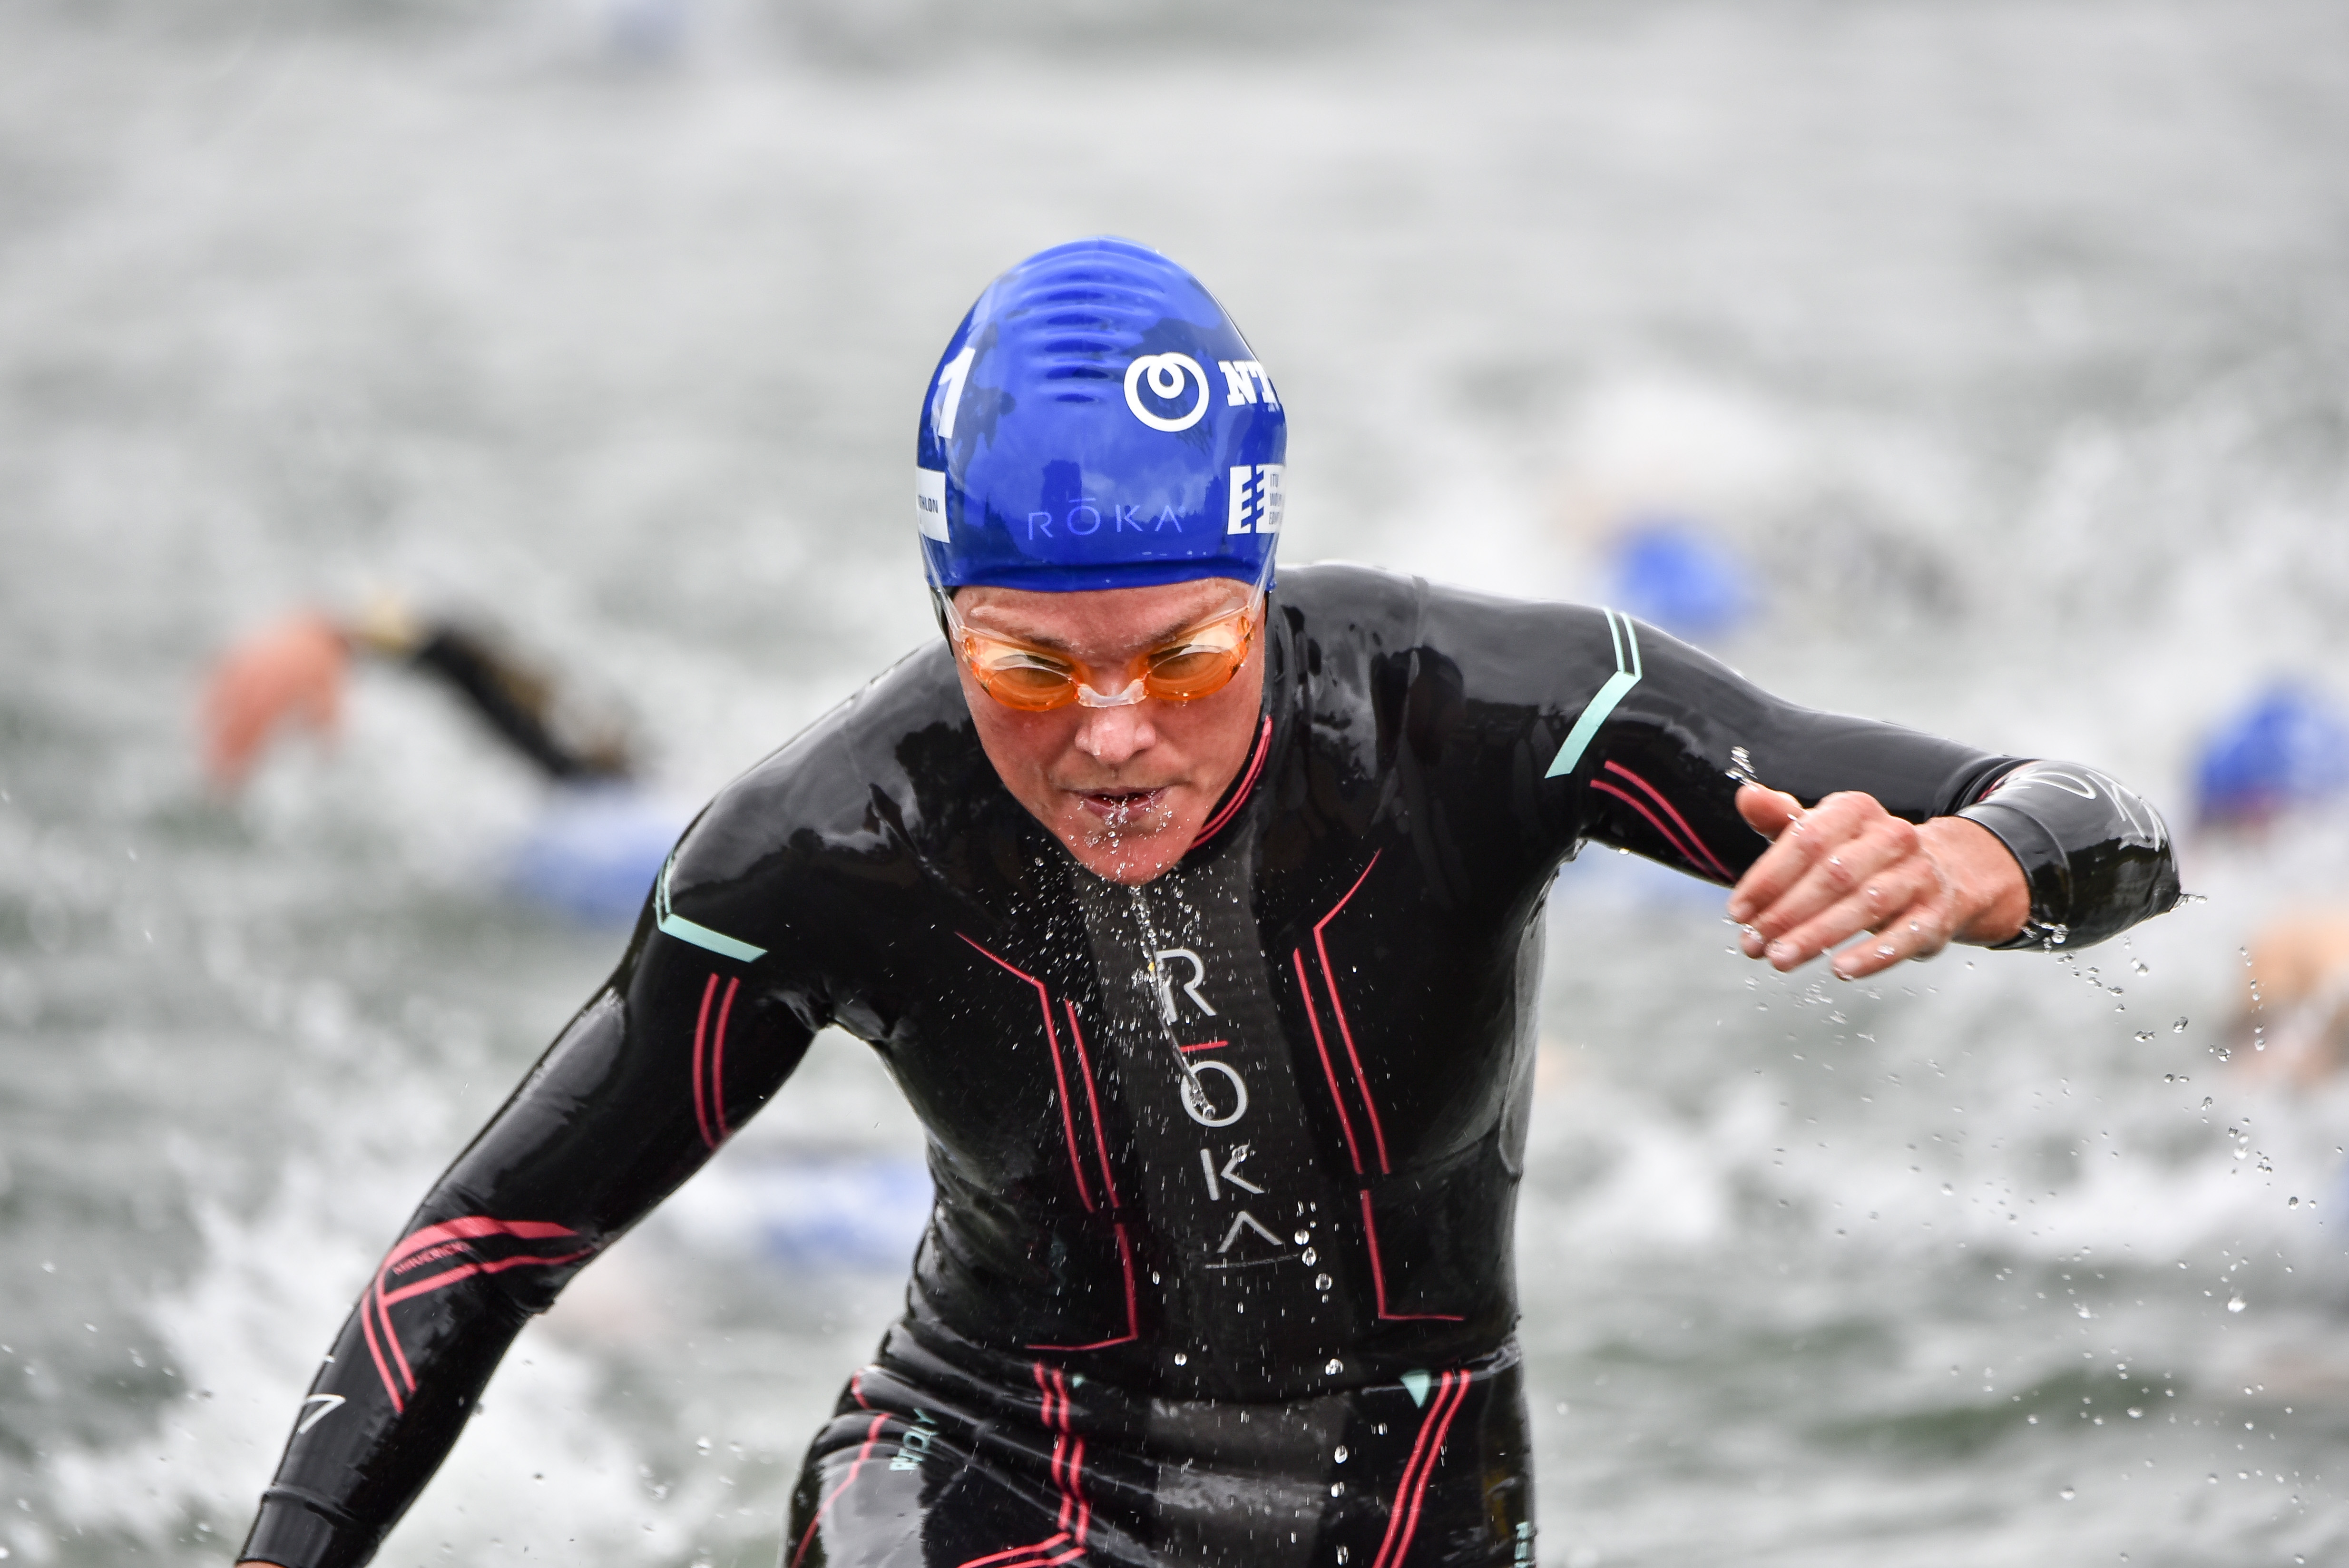 Flora Duffy exiting swim